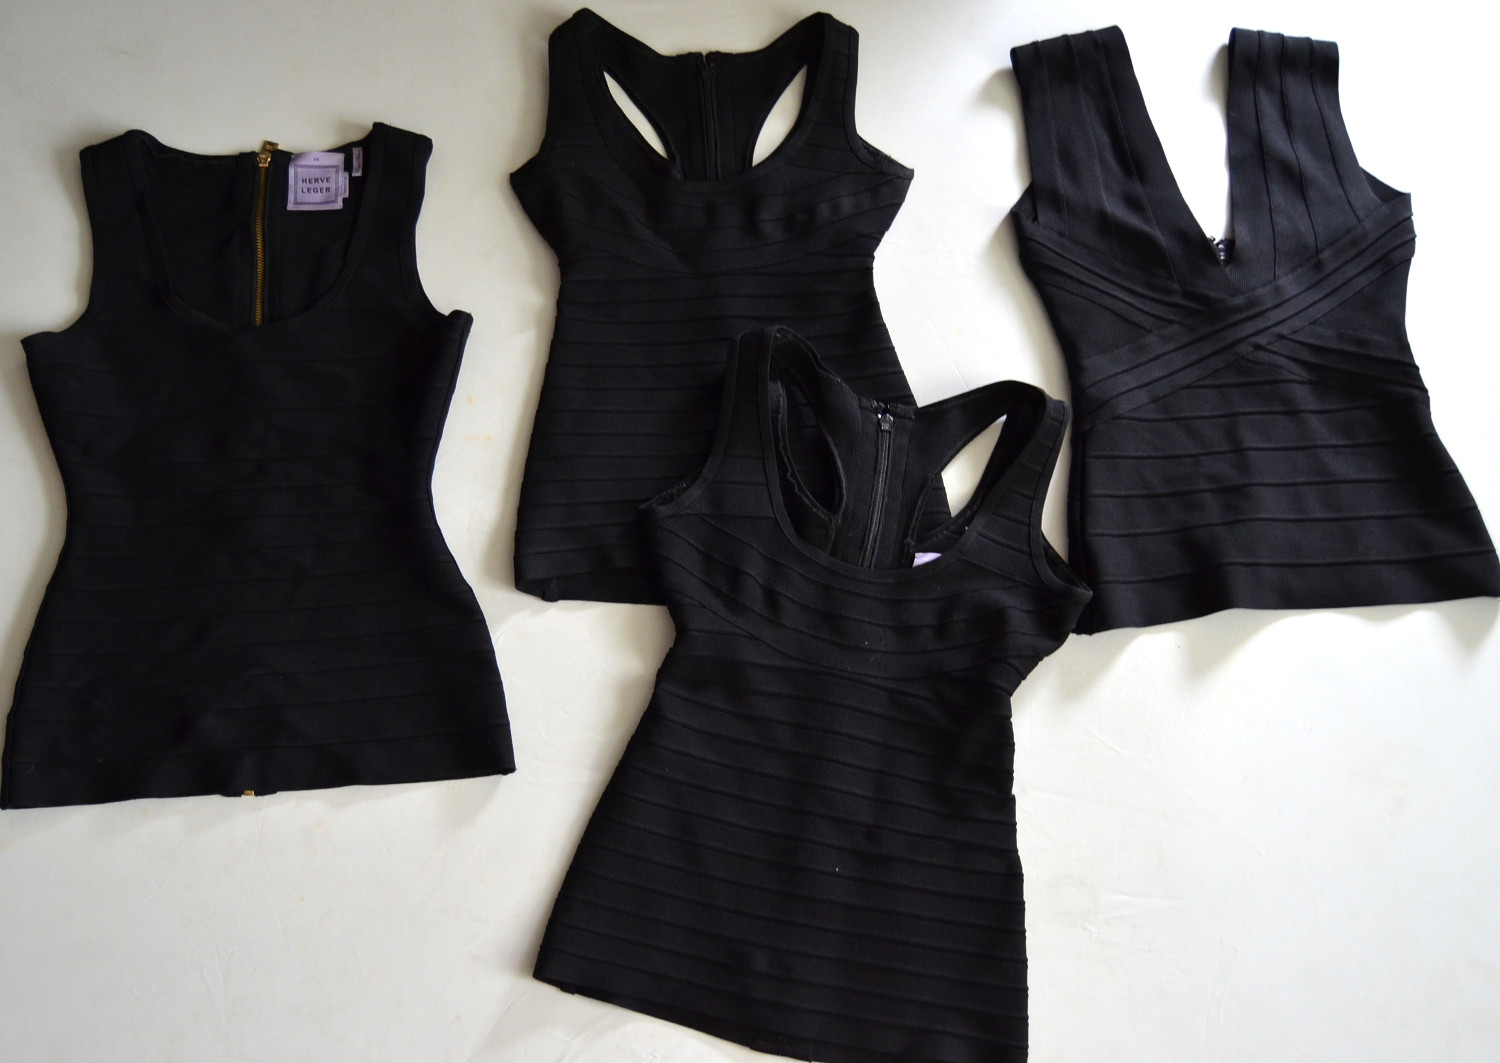 black essential must-have tight top wardrobe item